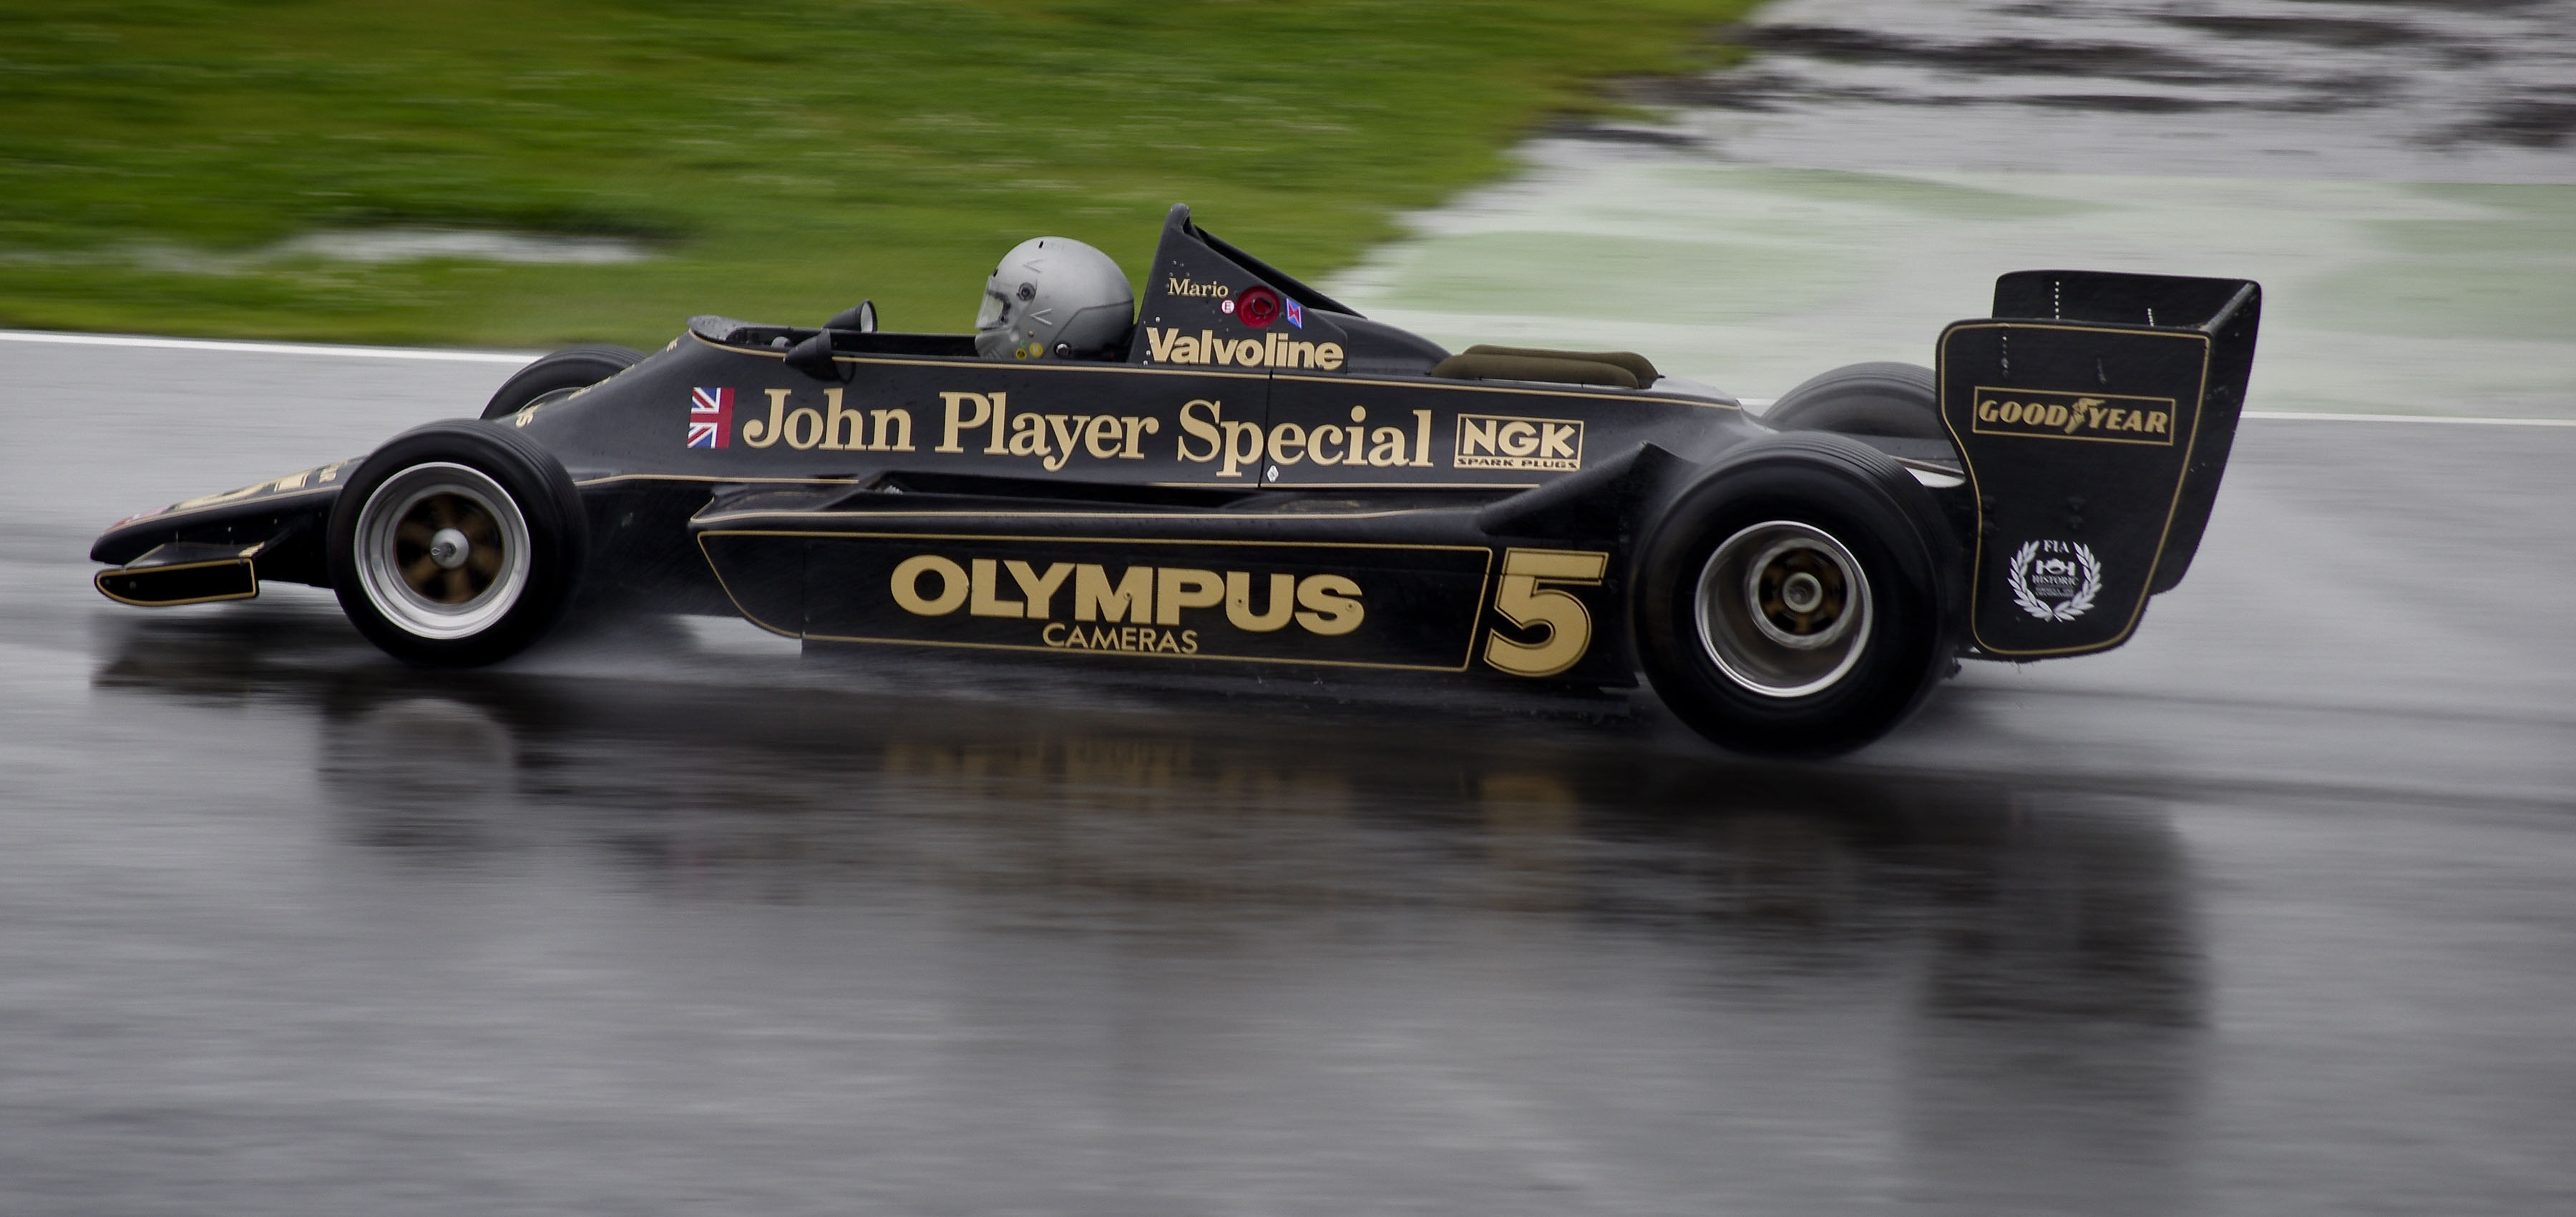 File:Lotus 79 (3).jpg - Wikimedia Commons